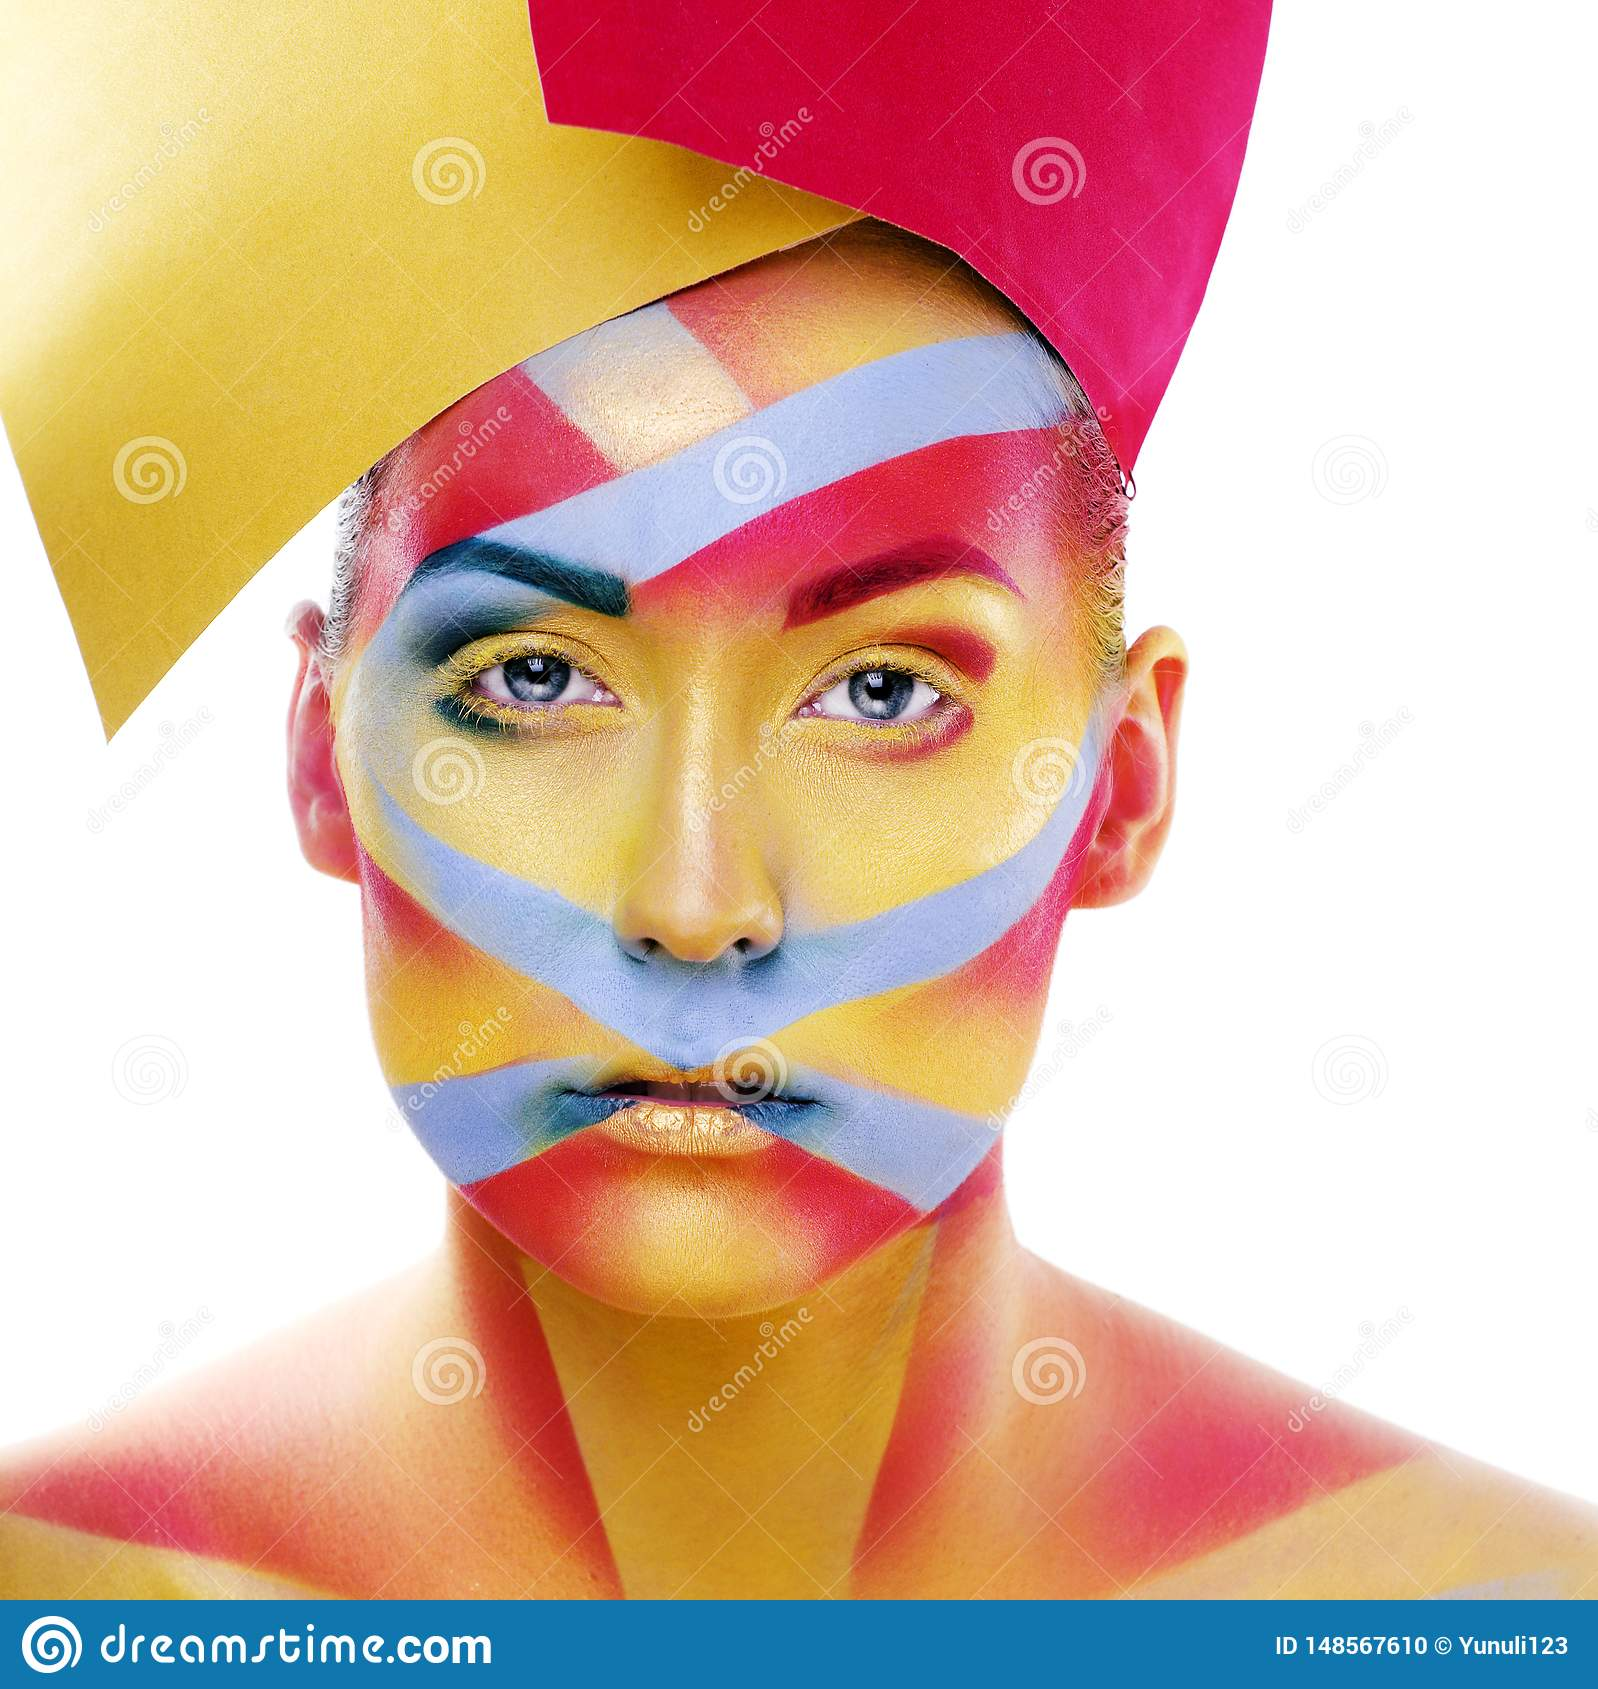 Woman with creative geometry make up, red, yellow, blue closeup smiling colored, bright creative concept